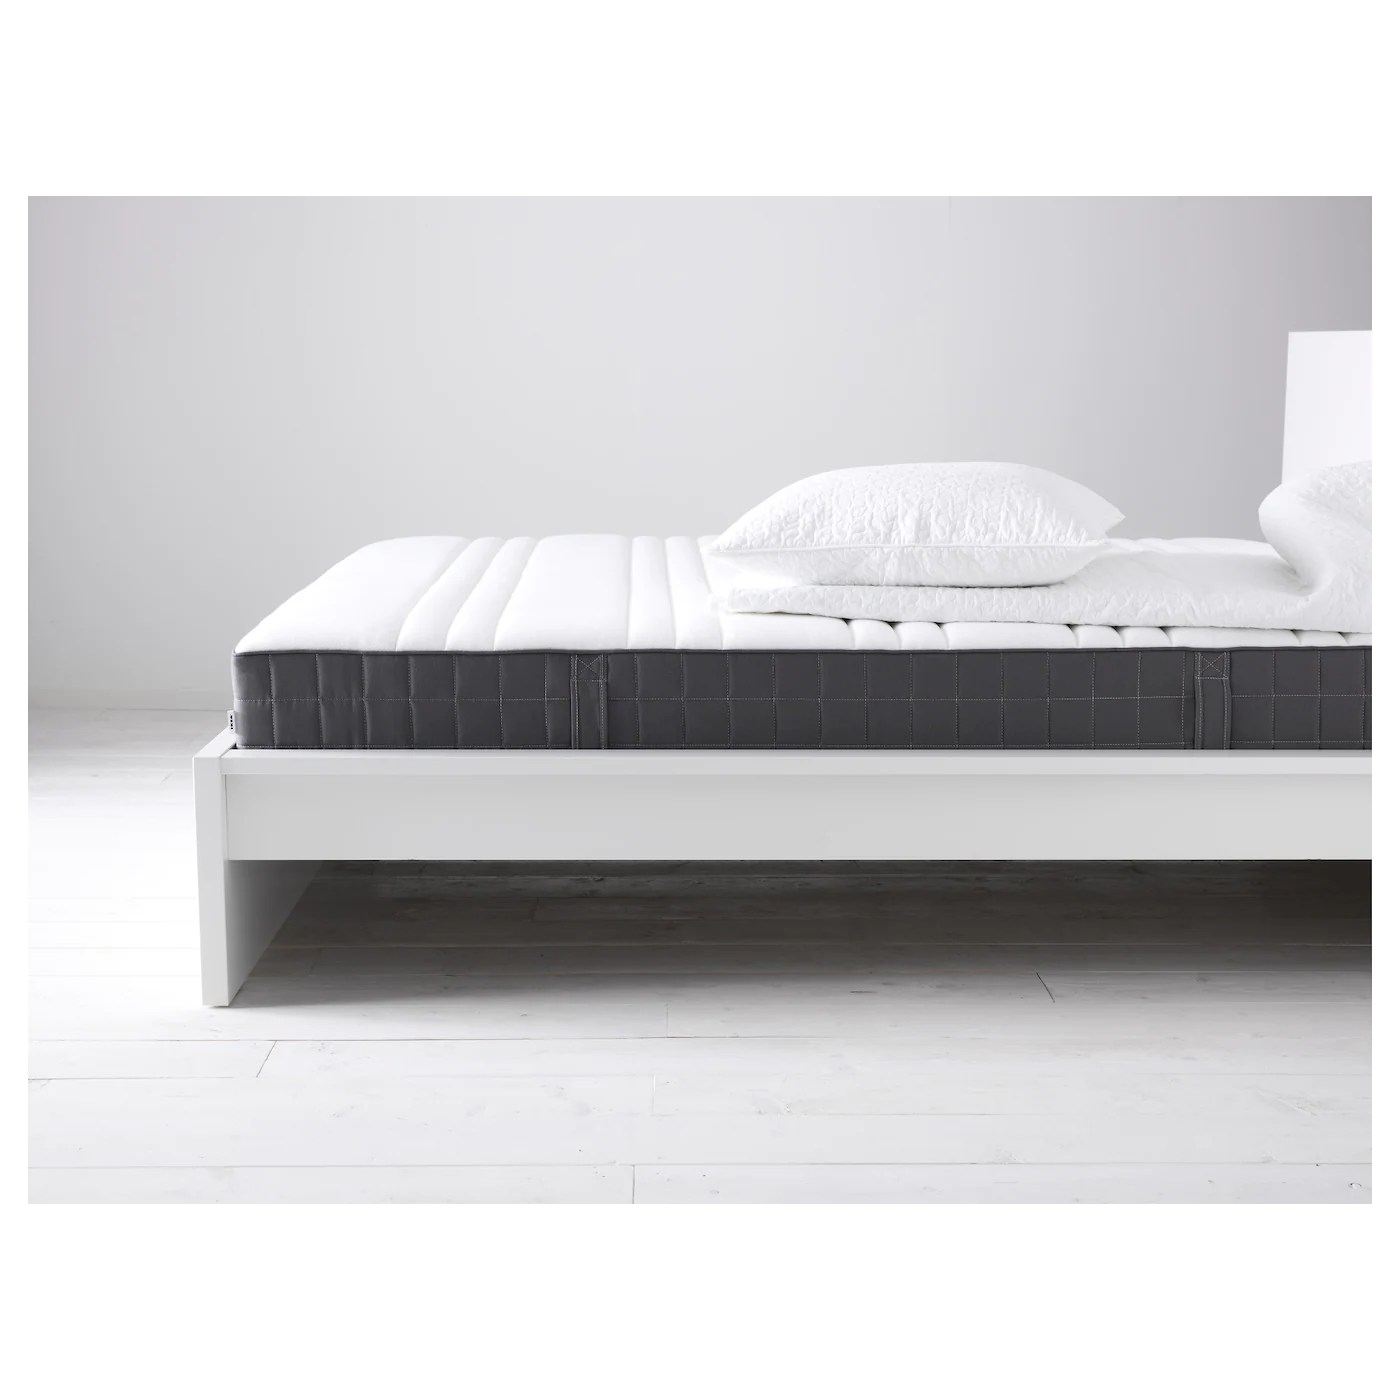 Hovag Mattress HÖvÅg Pocket Sprung Mattress Firm Dark Grey